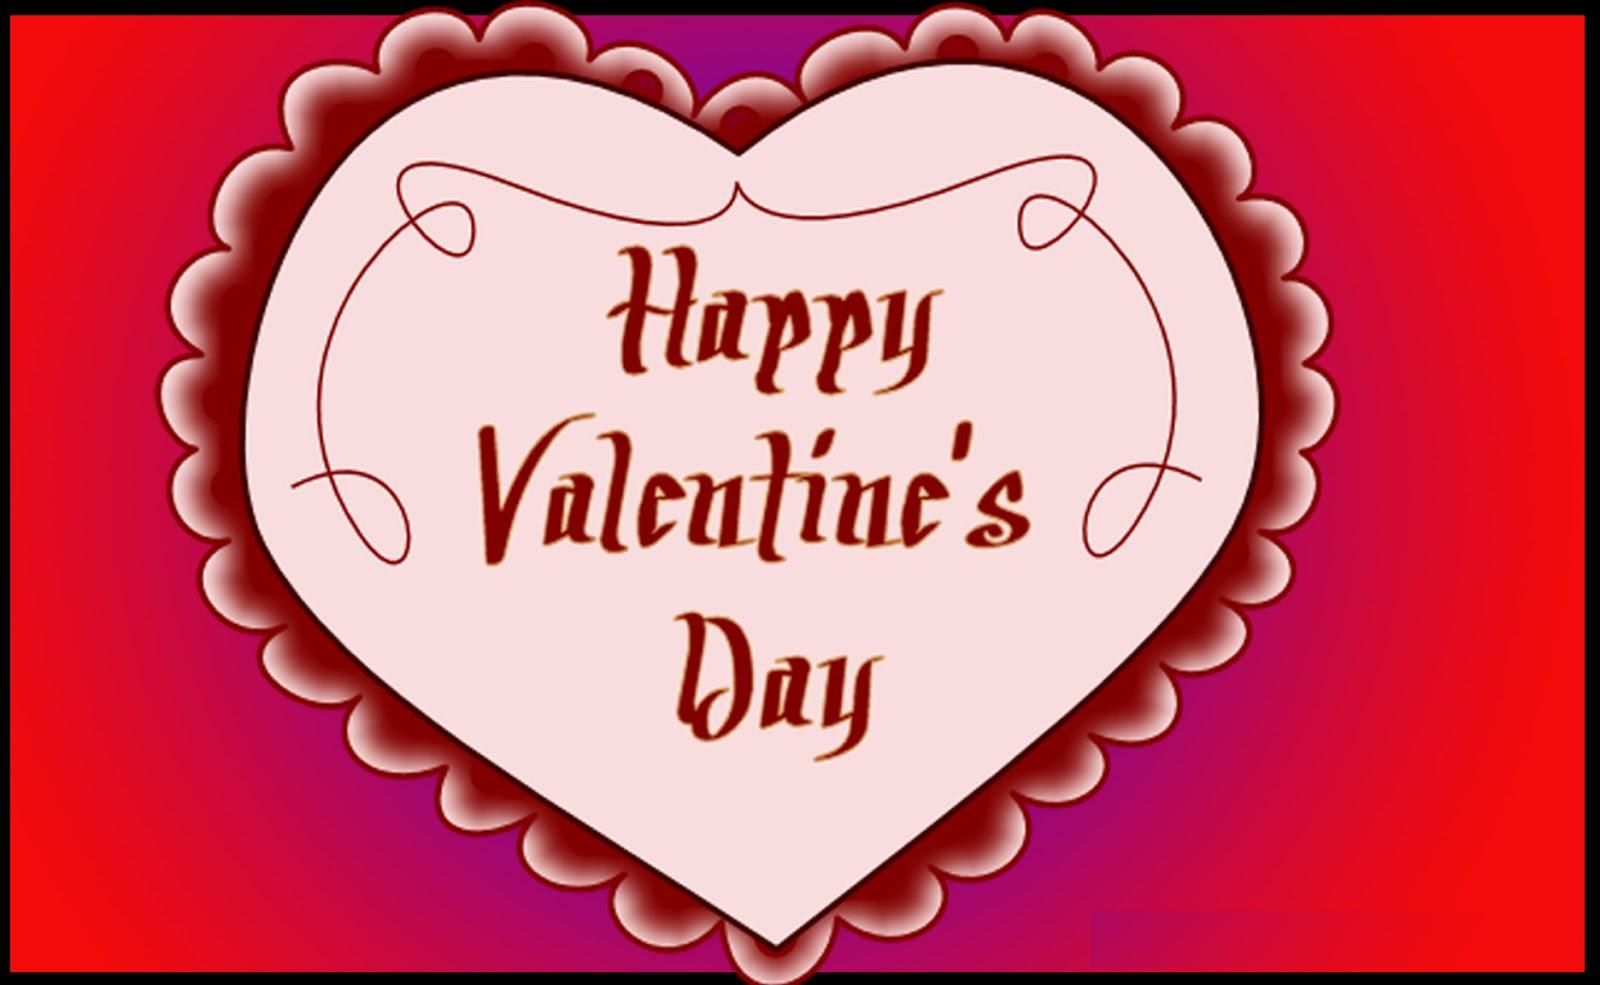 happy valentines day wallpapers free wallpaper - Happy Valentines Day Pictures Free